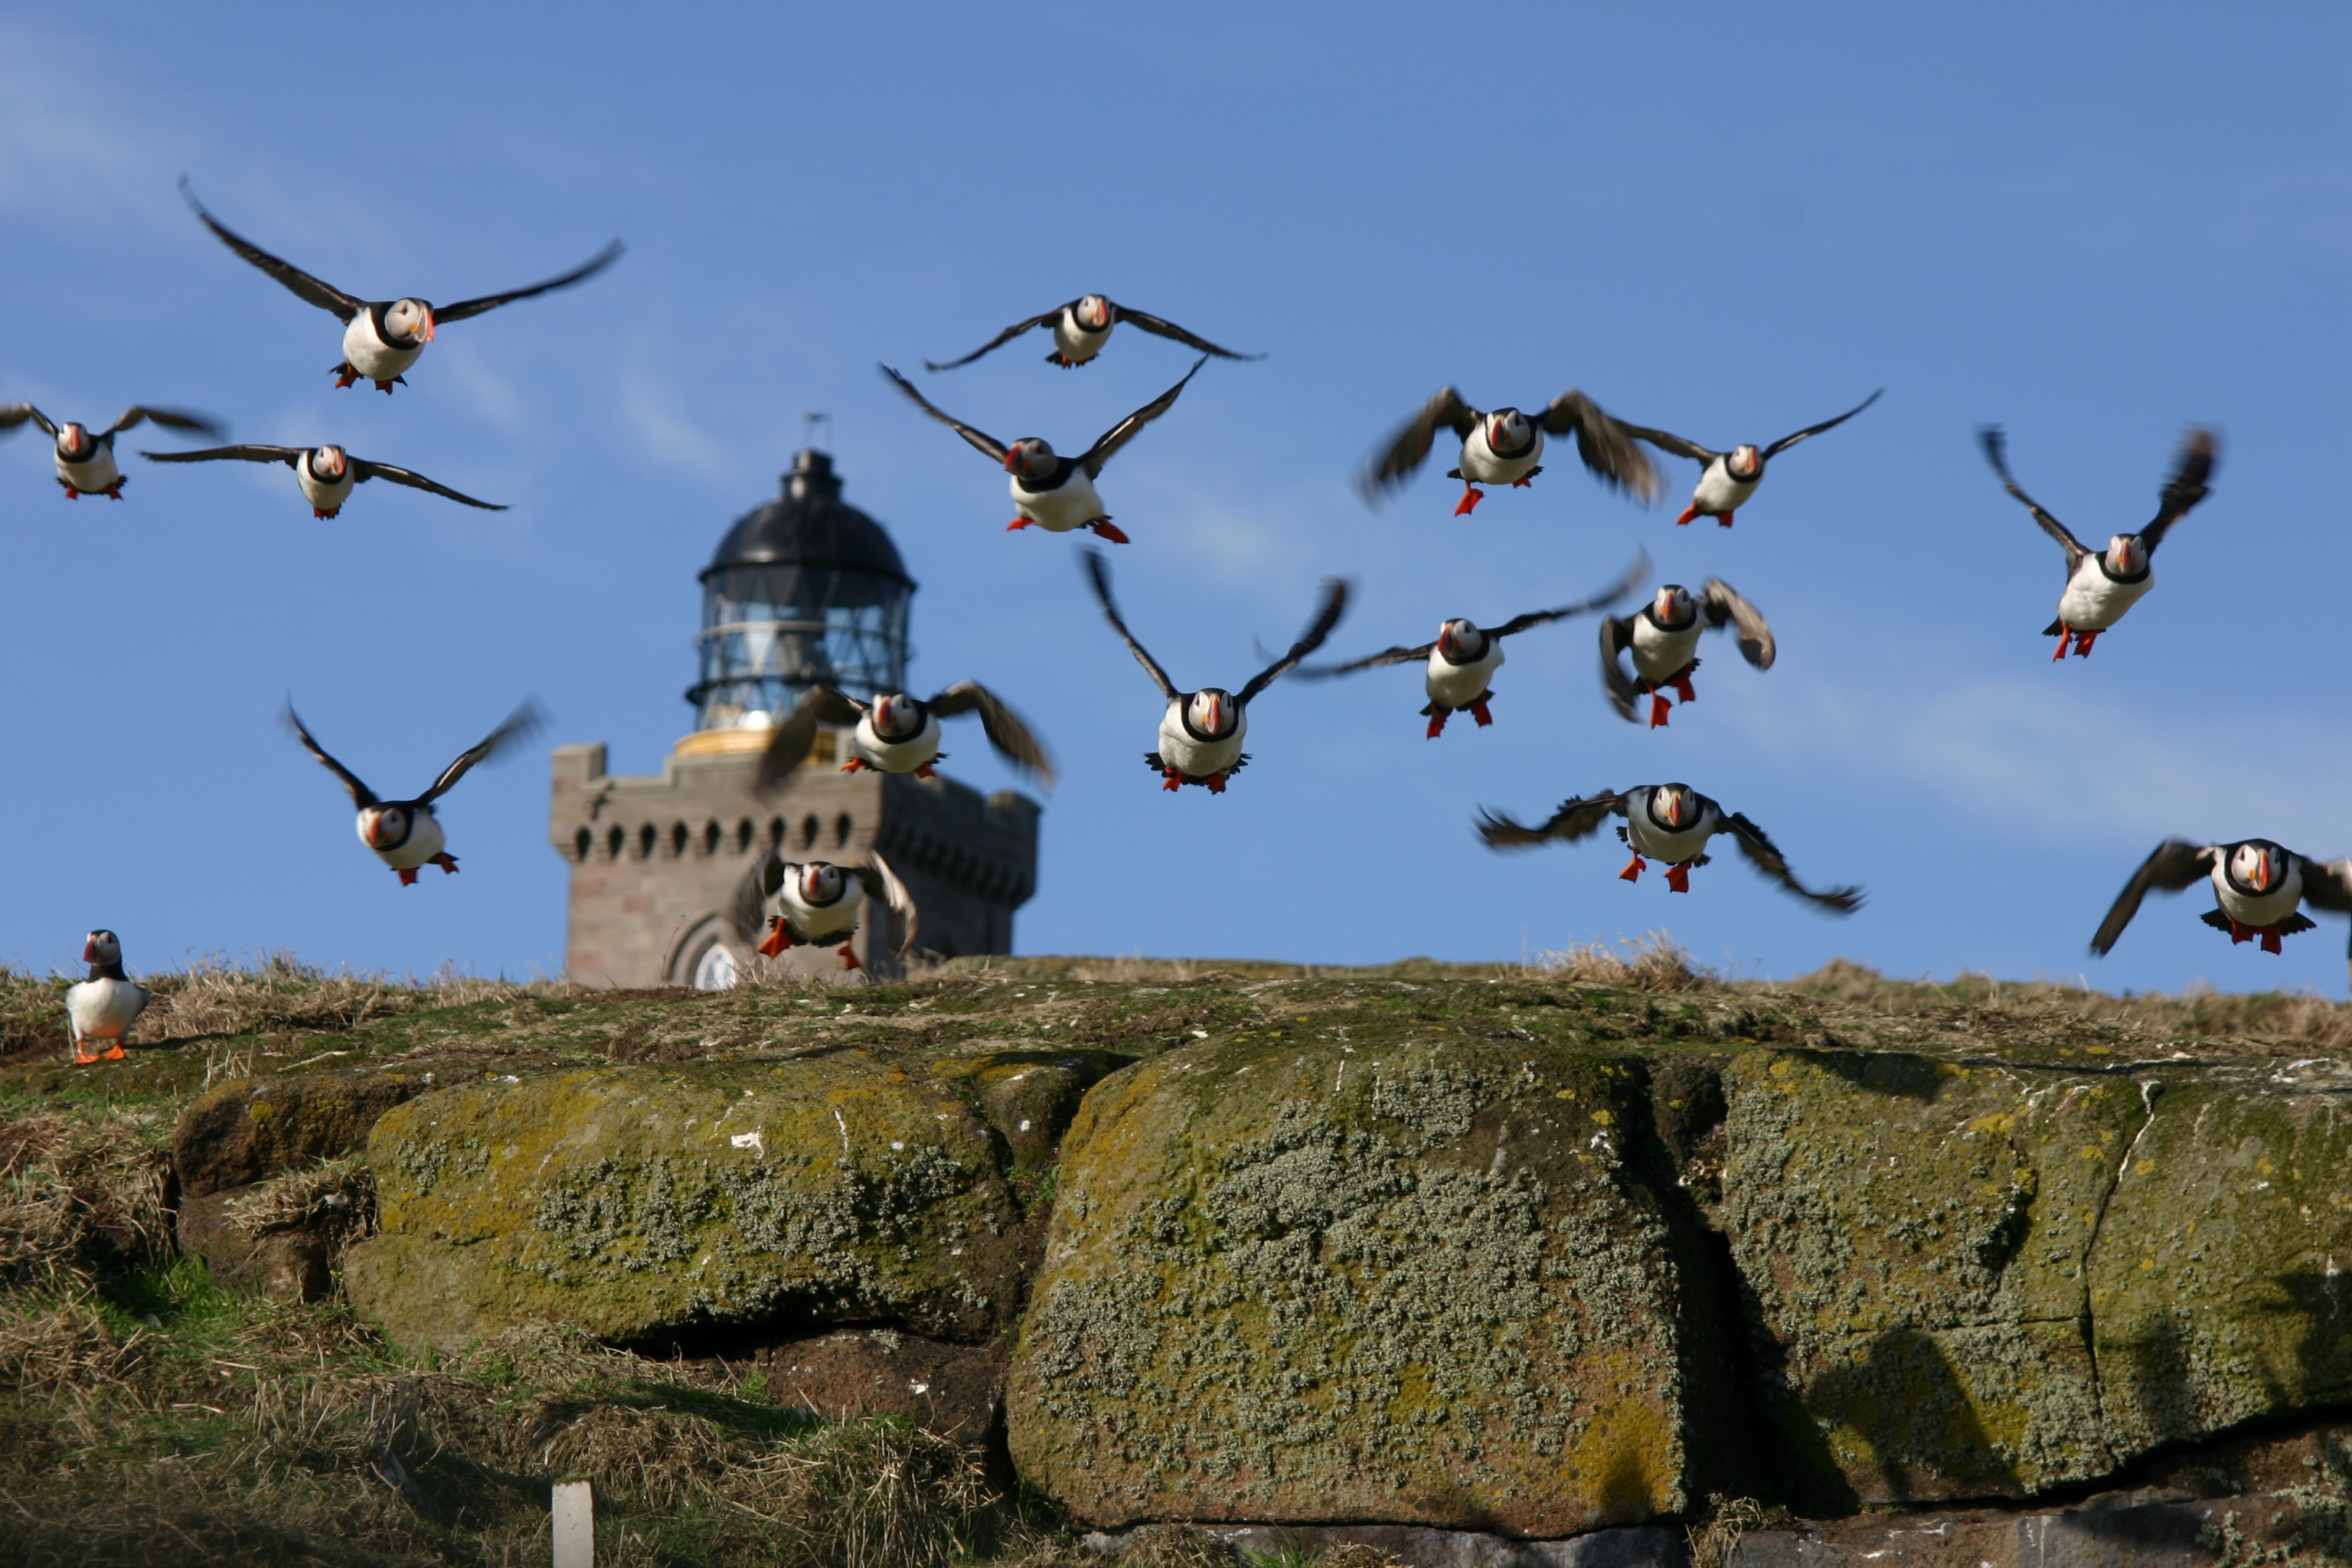 Puffins in flight by a lighthouse